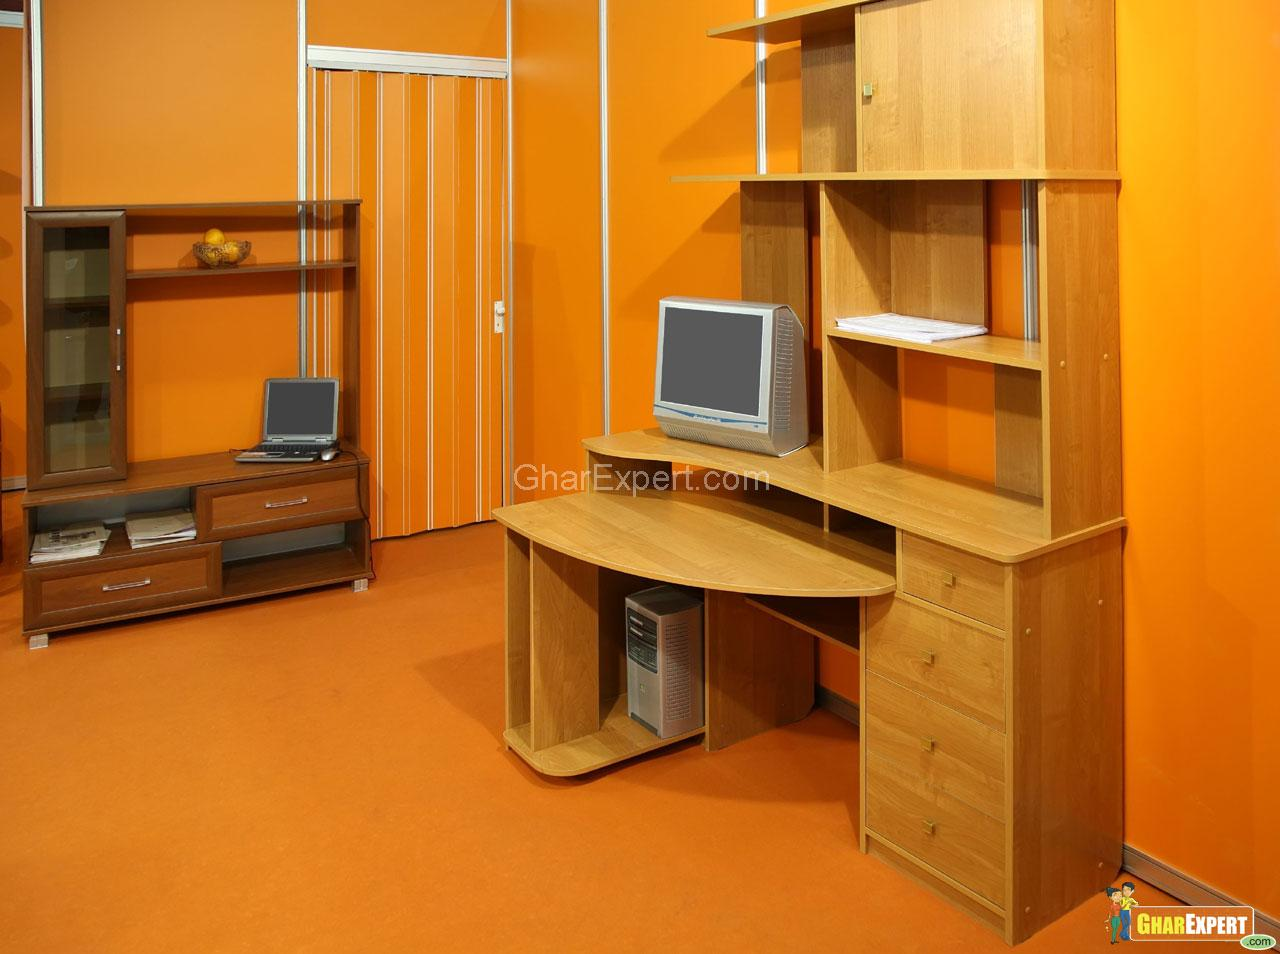 Study room furniture gharexpert - Study room furniture designe ...